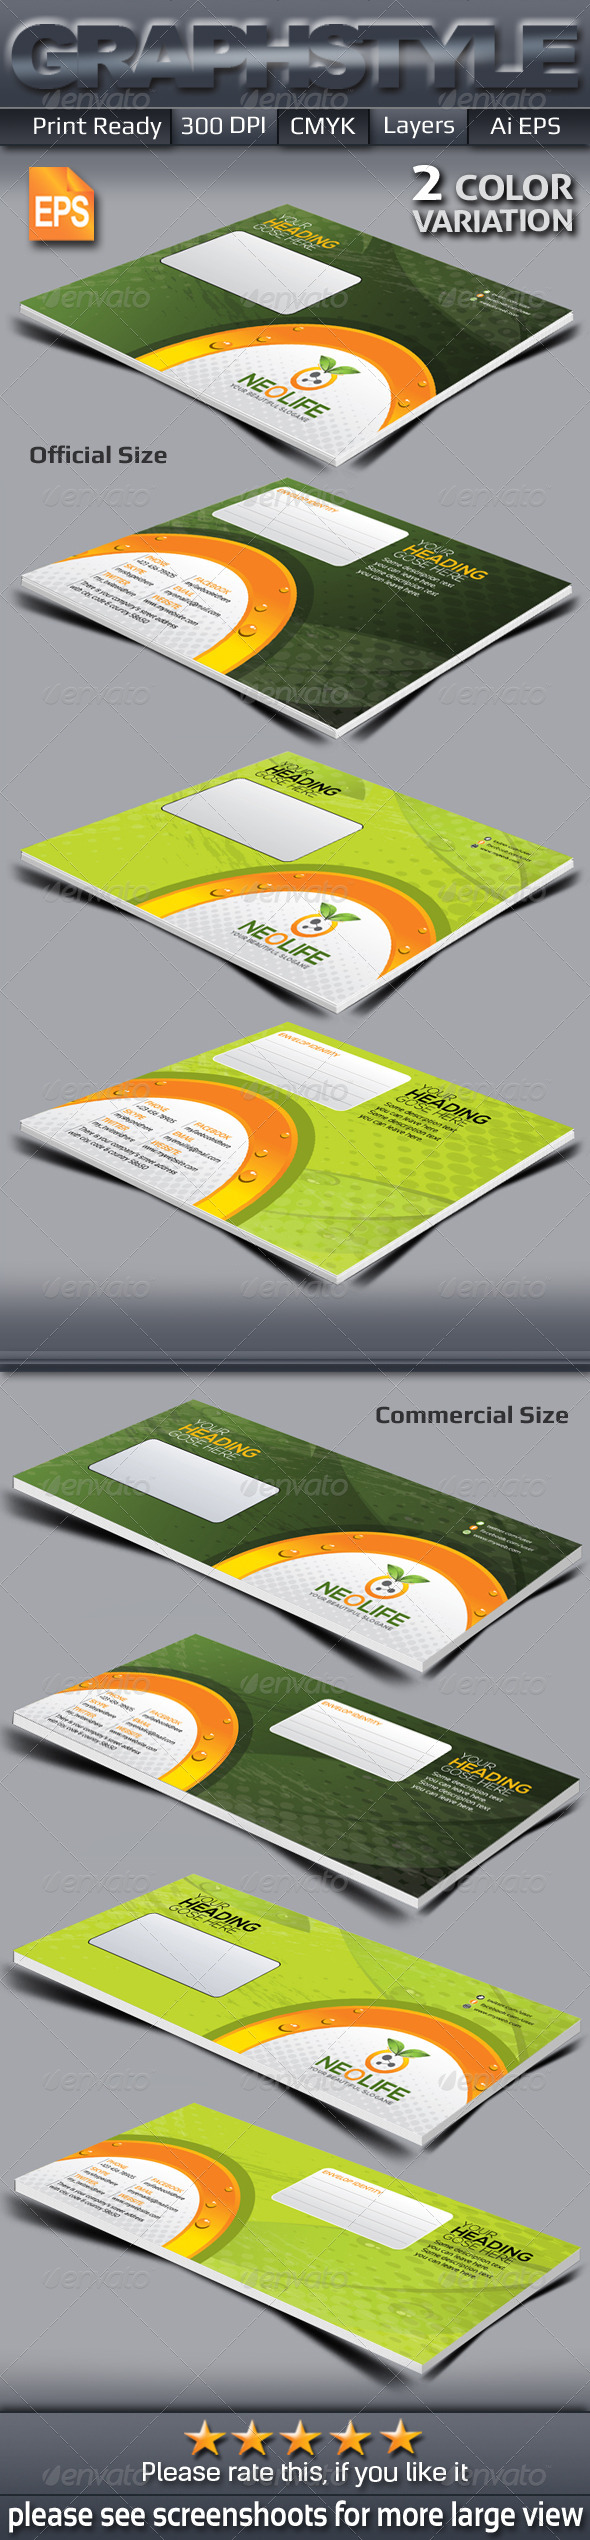 GraphicRiver Neolife Envelop Packaging 6489000